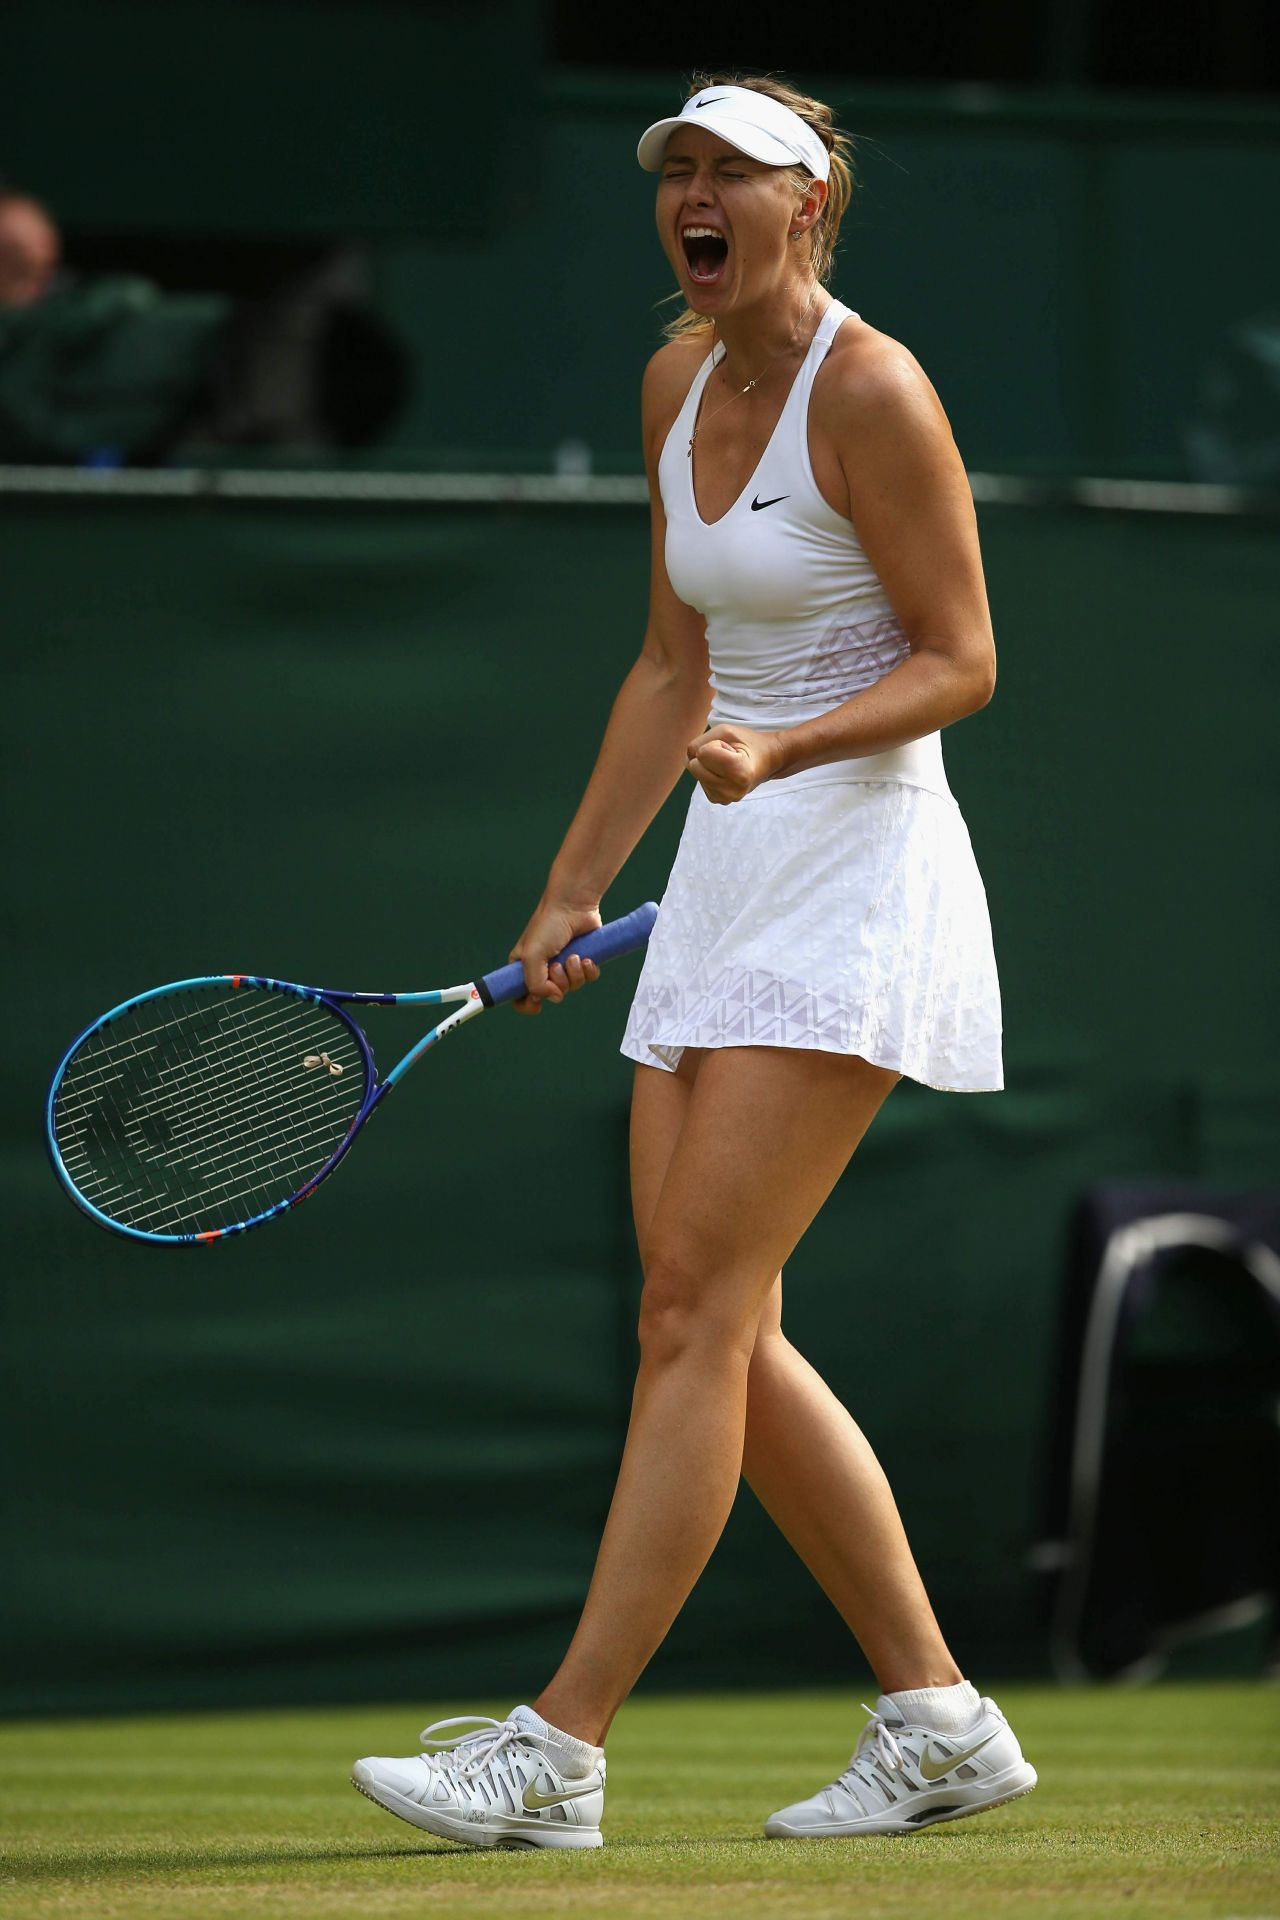 Maria Sharapova Wimbledon Tournament 2015 Quarter Final